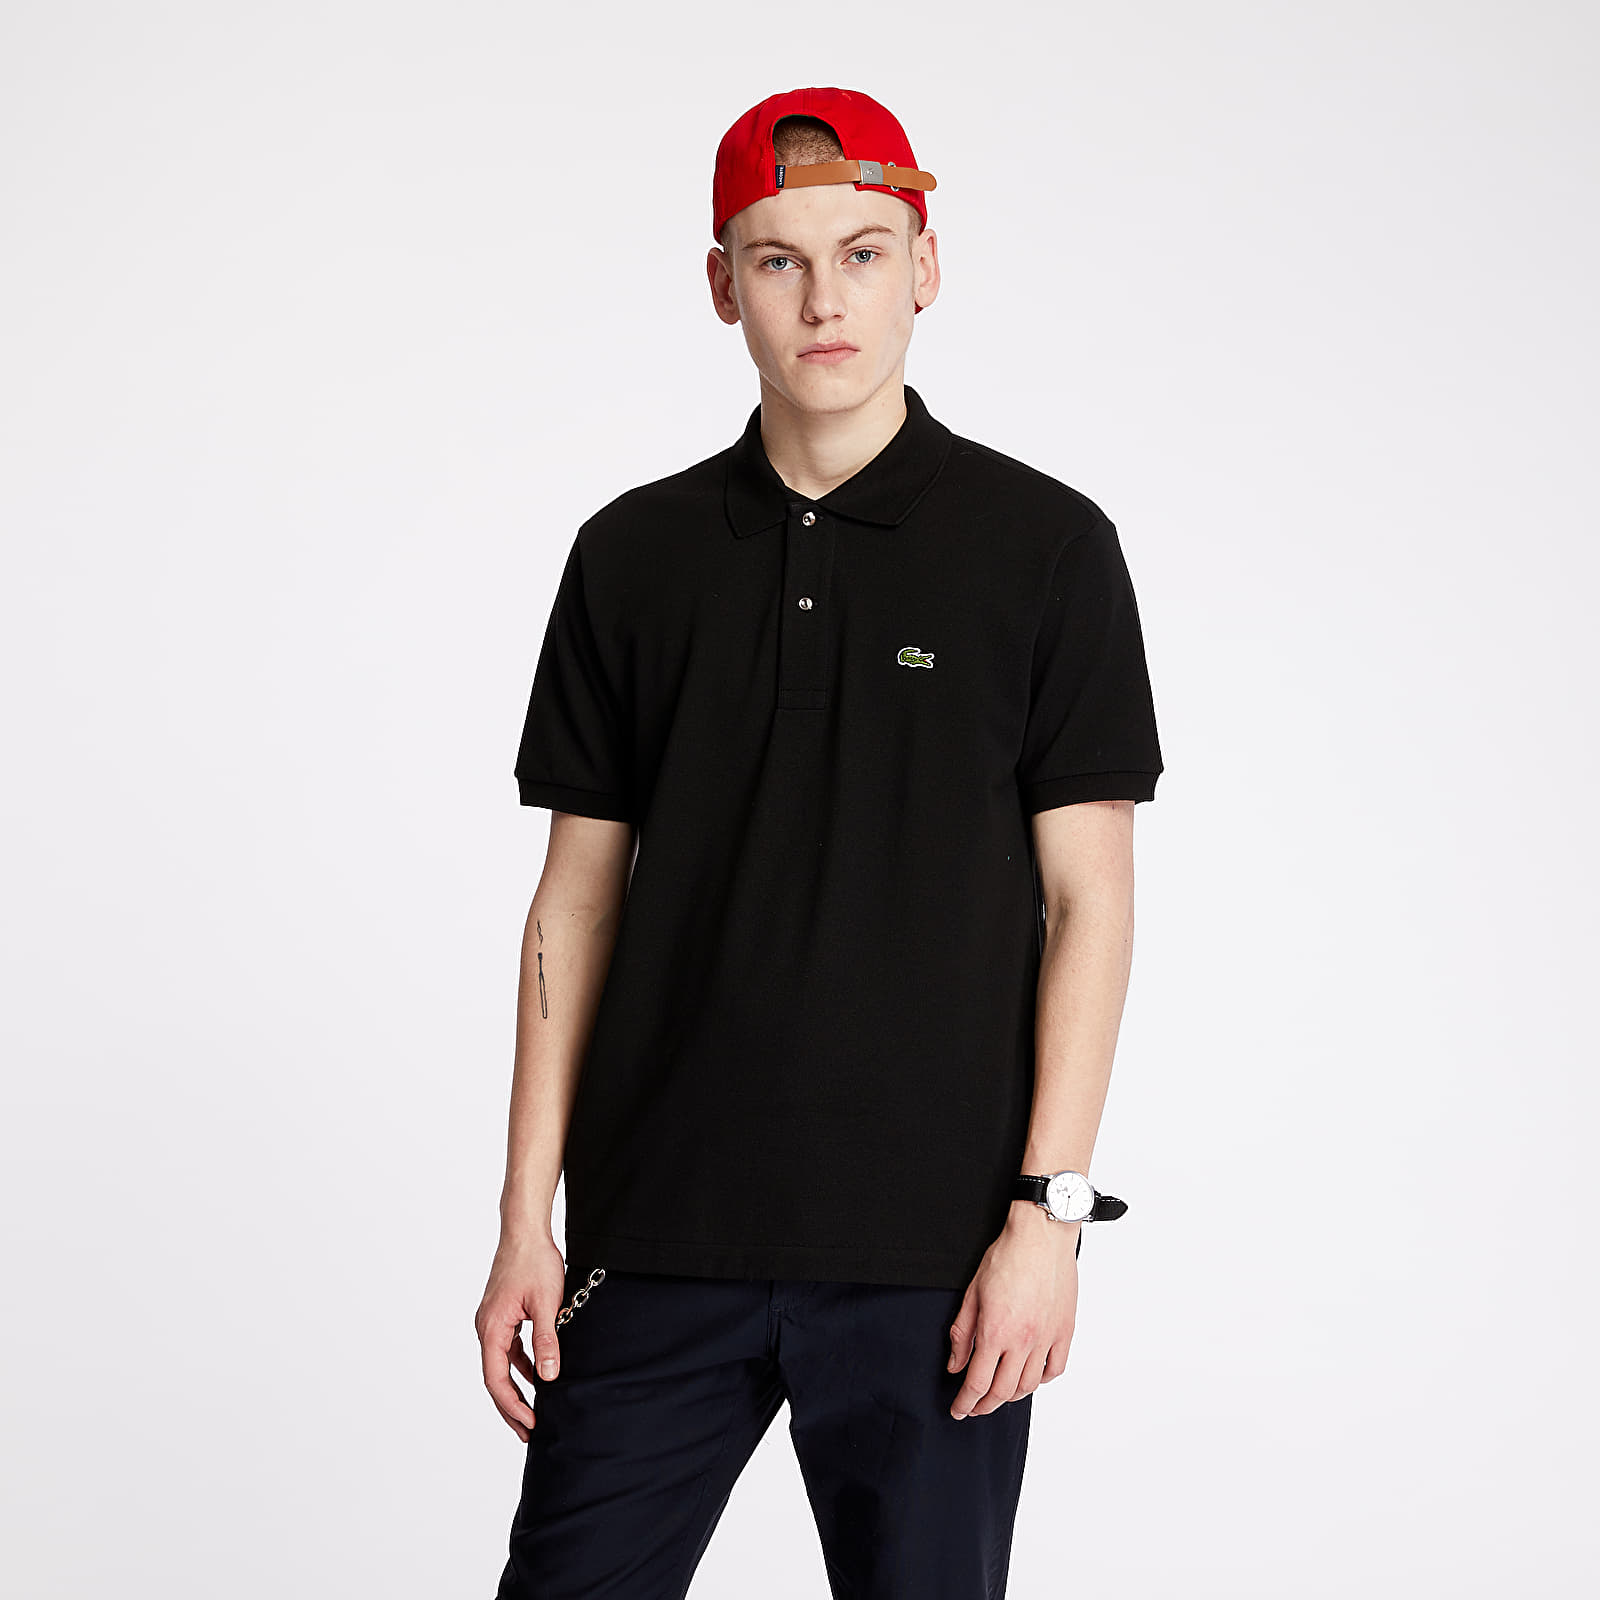 T-shirts LACOSTE Polo Tee Black